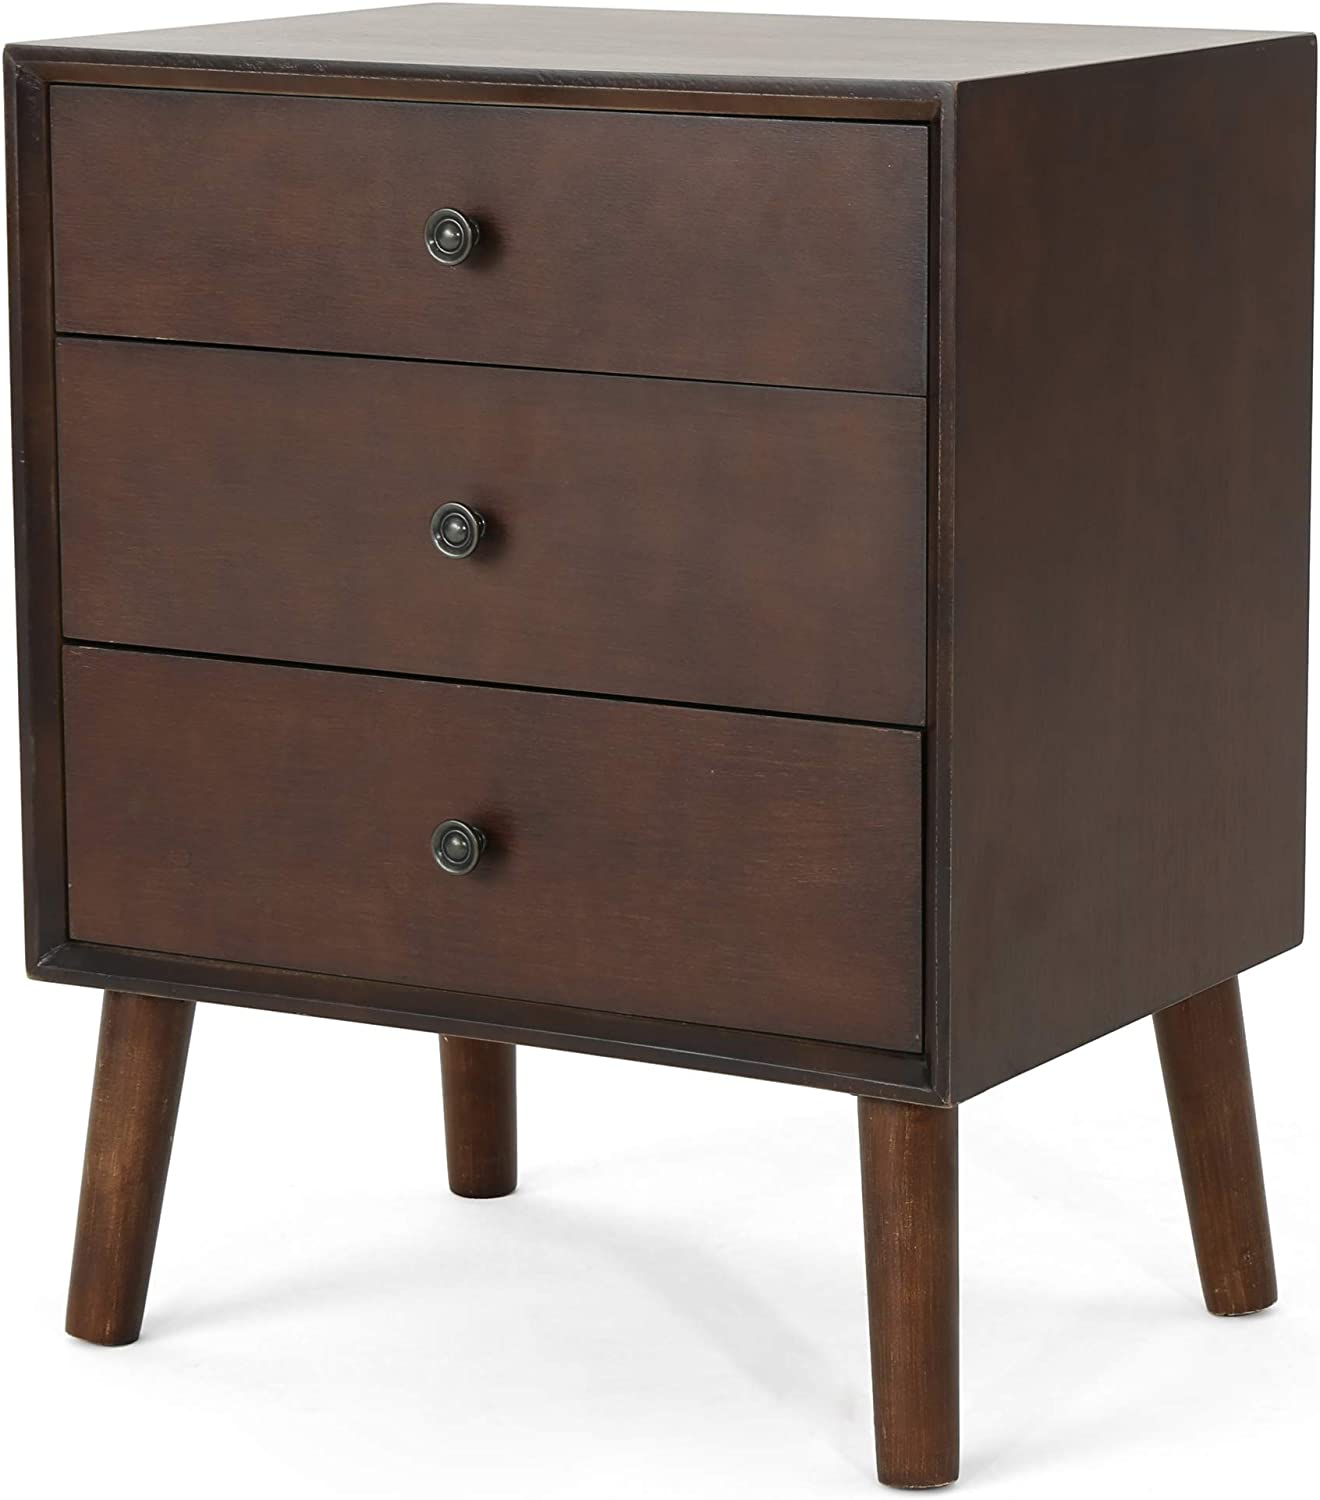 Christopher Knight Home Moriah Mid-Century Faux Wood Cabinet, Walnut